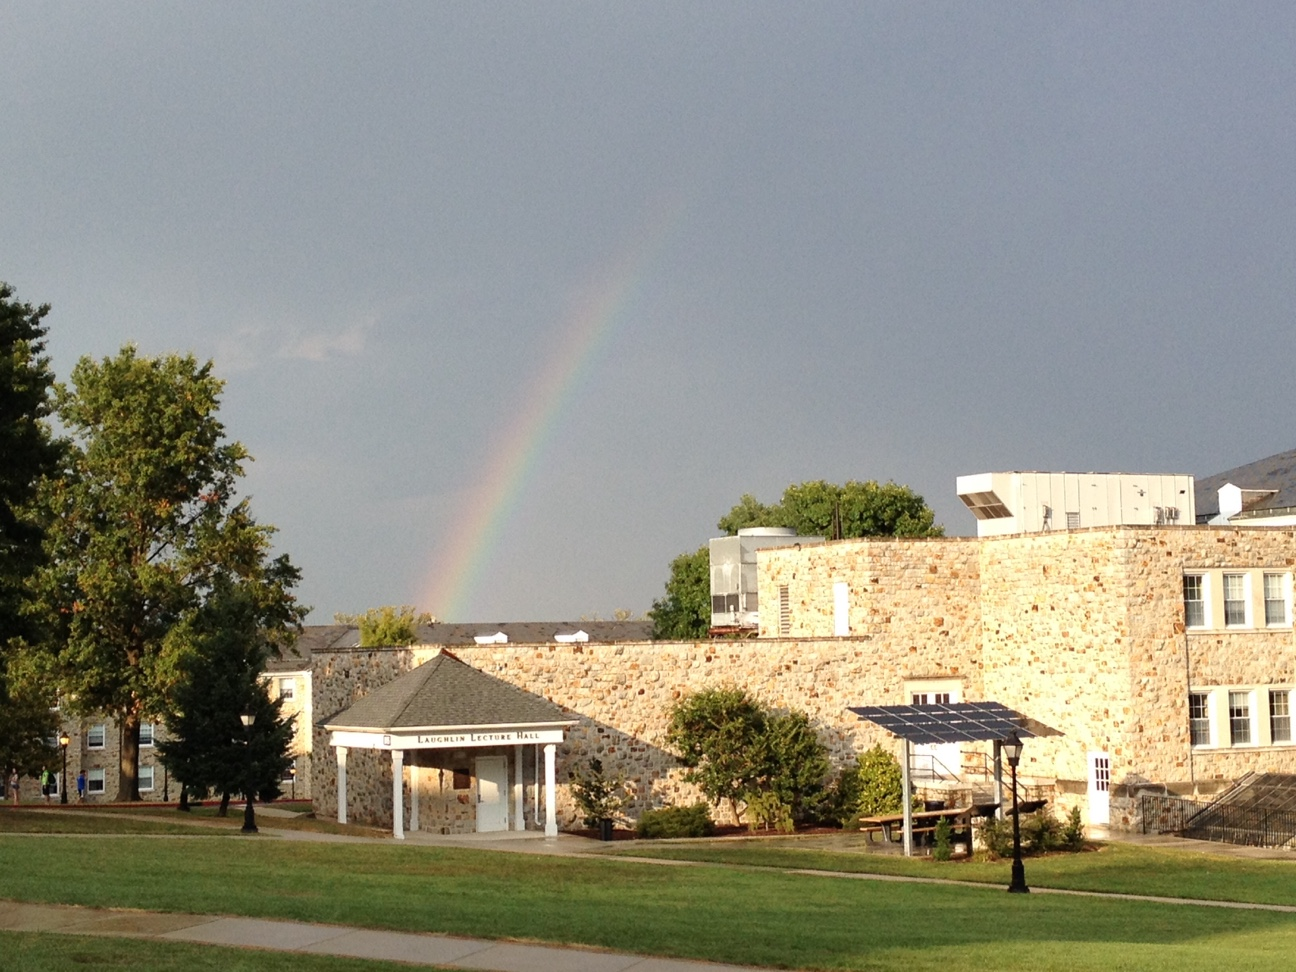 photo of a rainbow over the Science Building